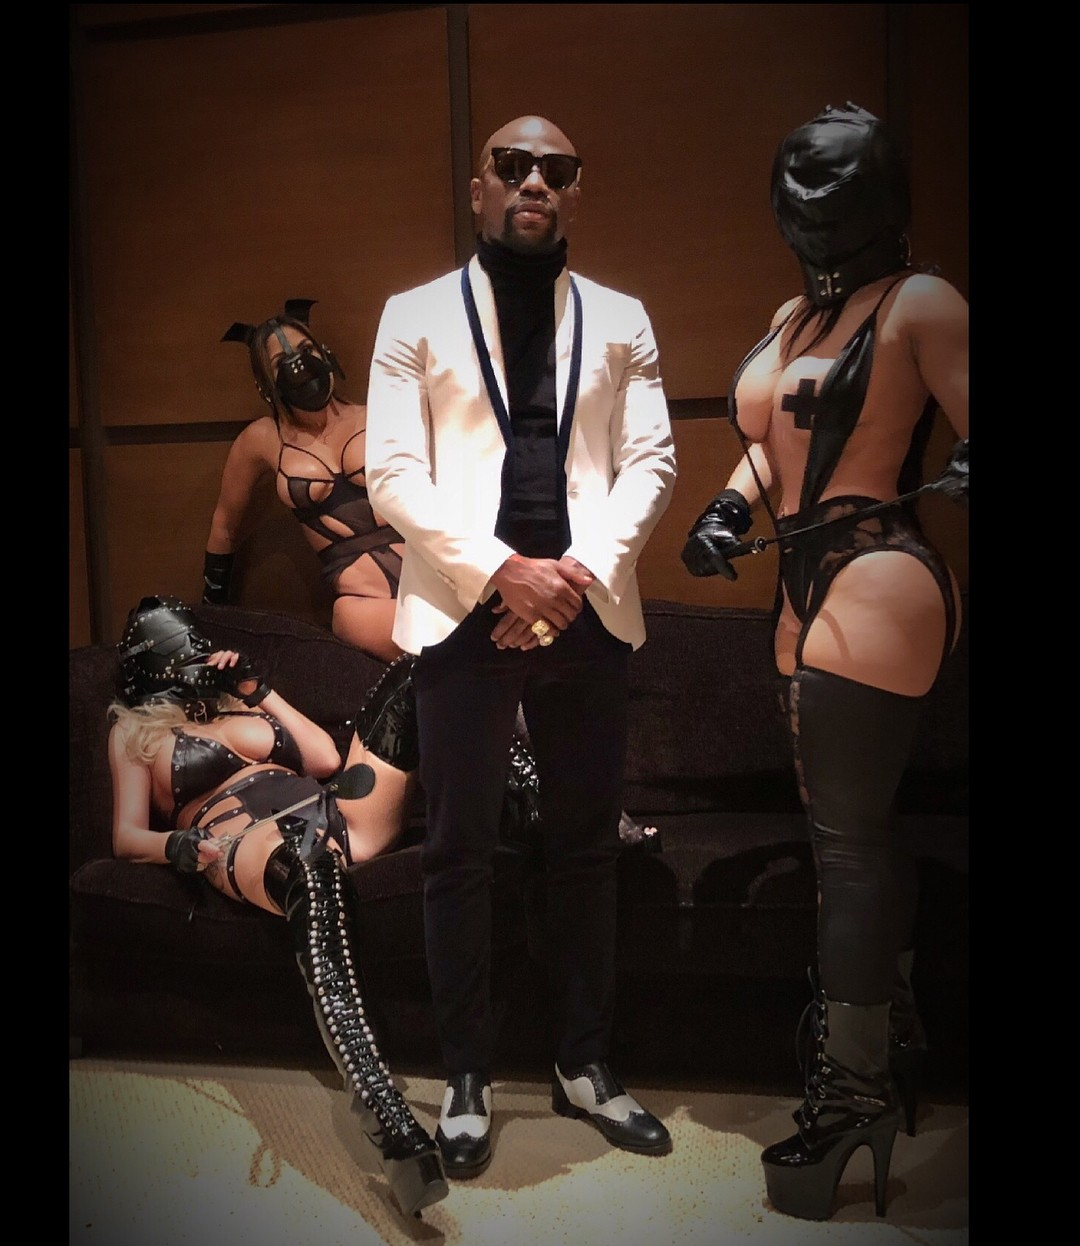 Floyd Mayweather Poses With Three Scantily Clad Women Wearing Leather Masks (4)